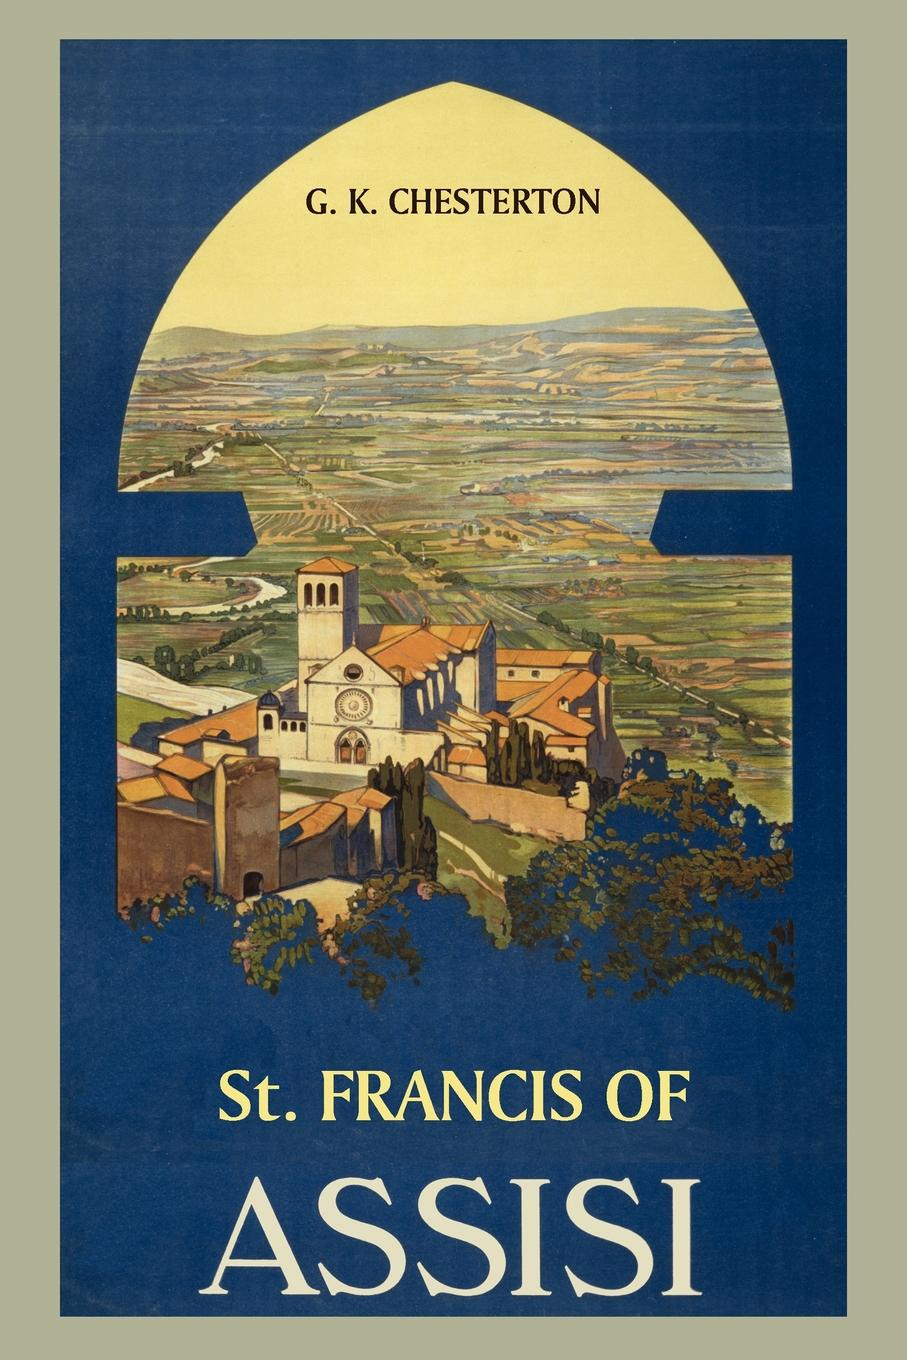 G. K. Chesterton St. Francis of Assisi receiving love workbook